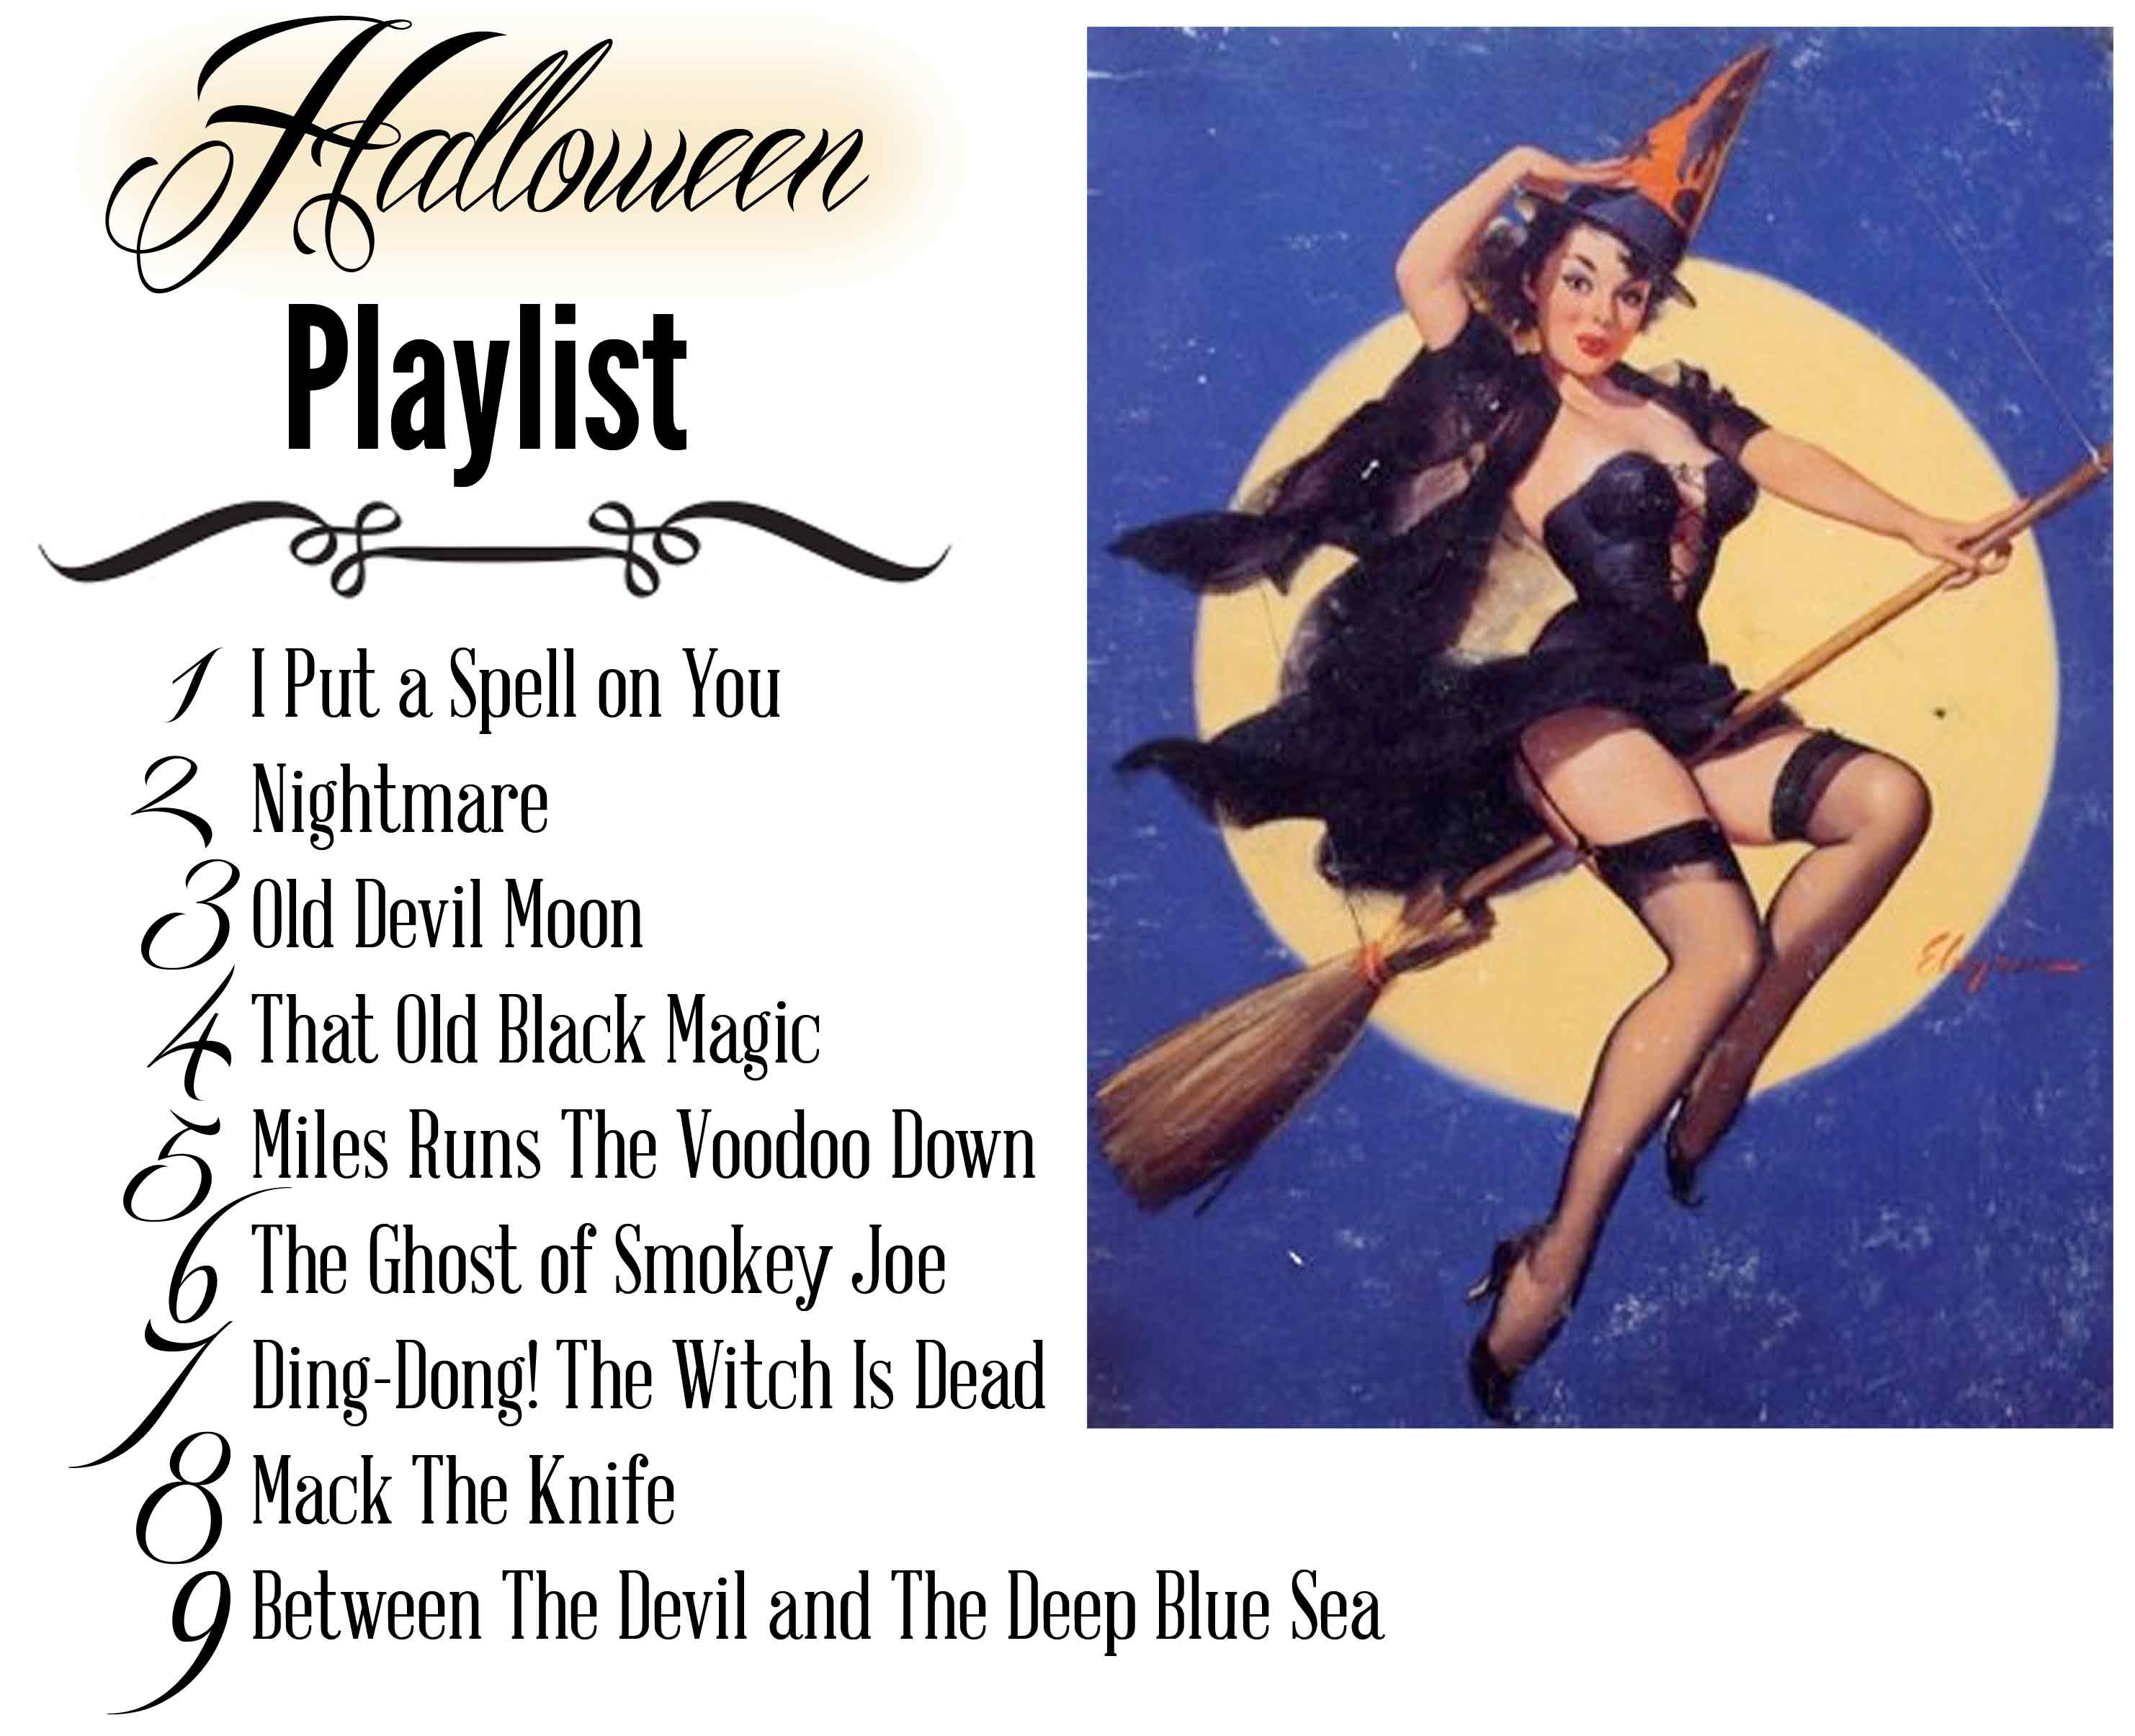 Halloween playlist | Married with Style